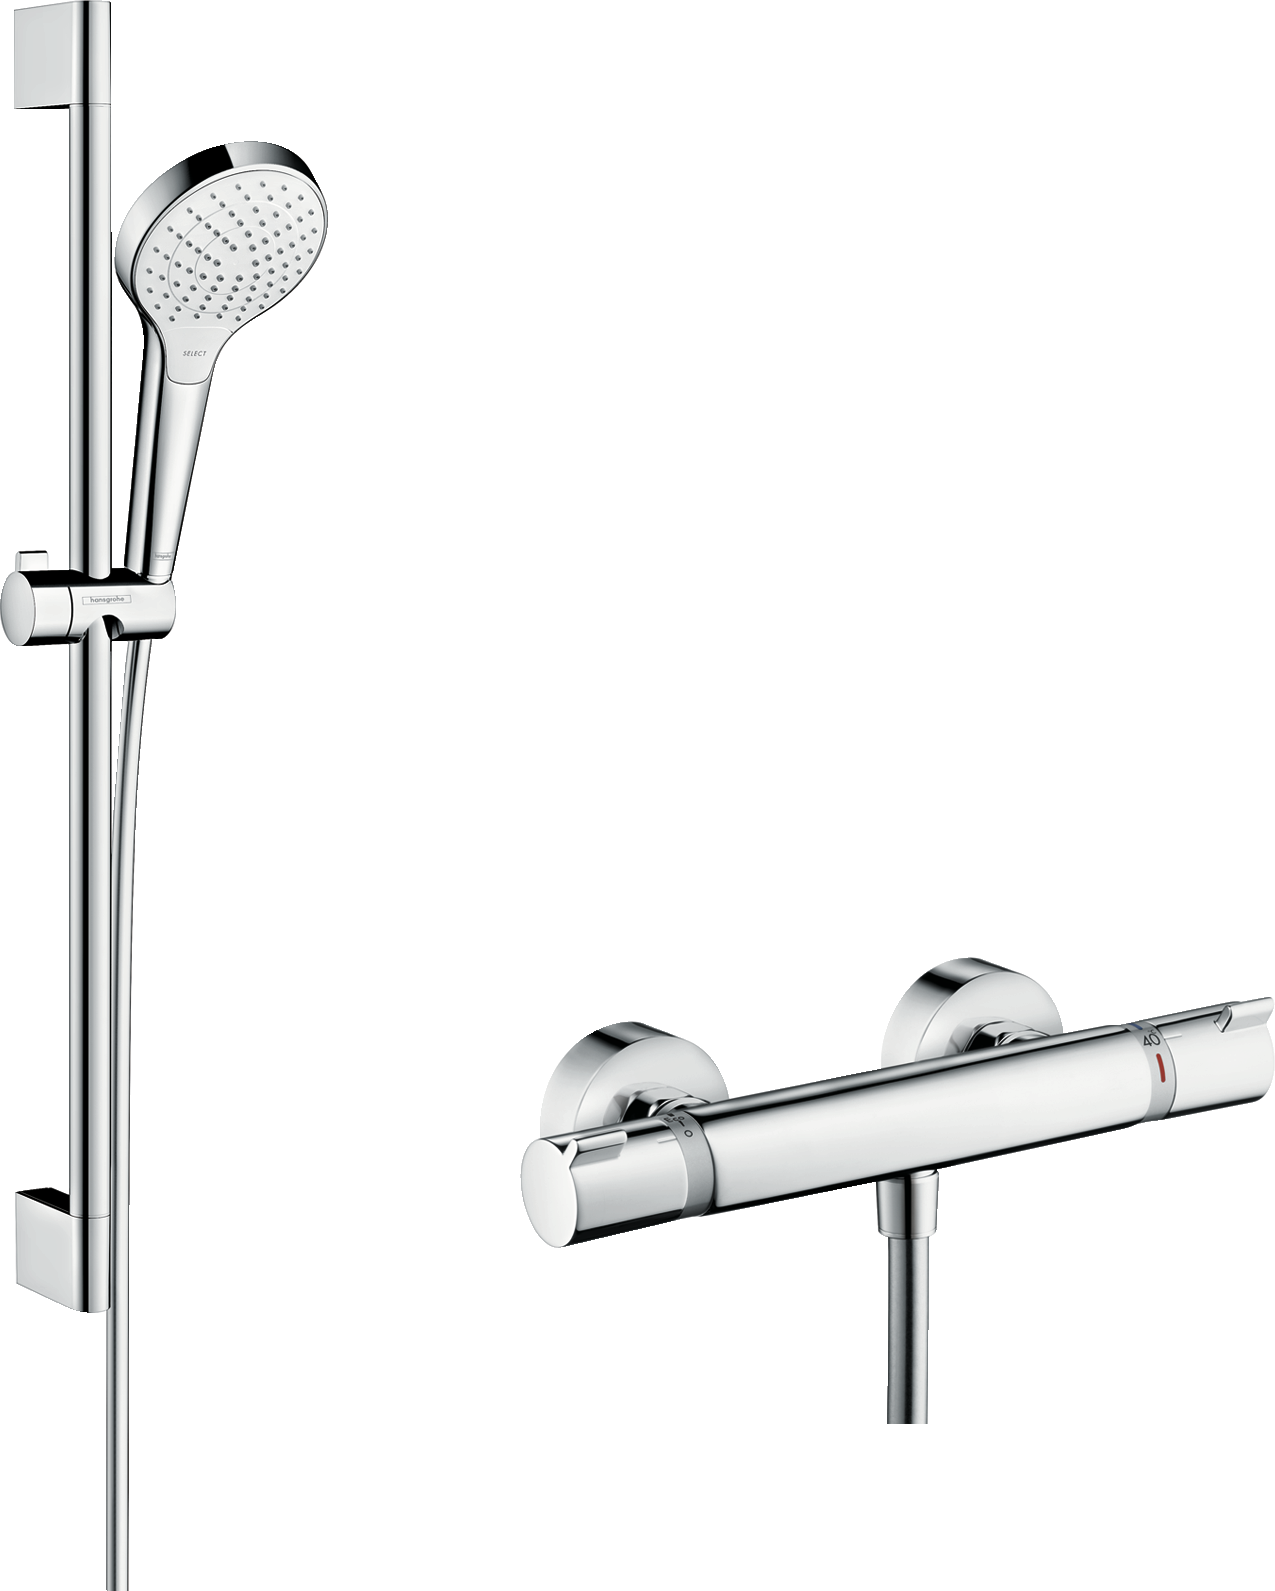 Hansgrohe Shower Combination Croma Select S Shower System For Exposed Installation Vario With Ecostat Comfort Thermostat And Shower Bar 65 Cm Item No 27013400 Hansgrohe Int